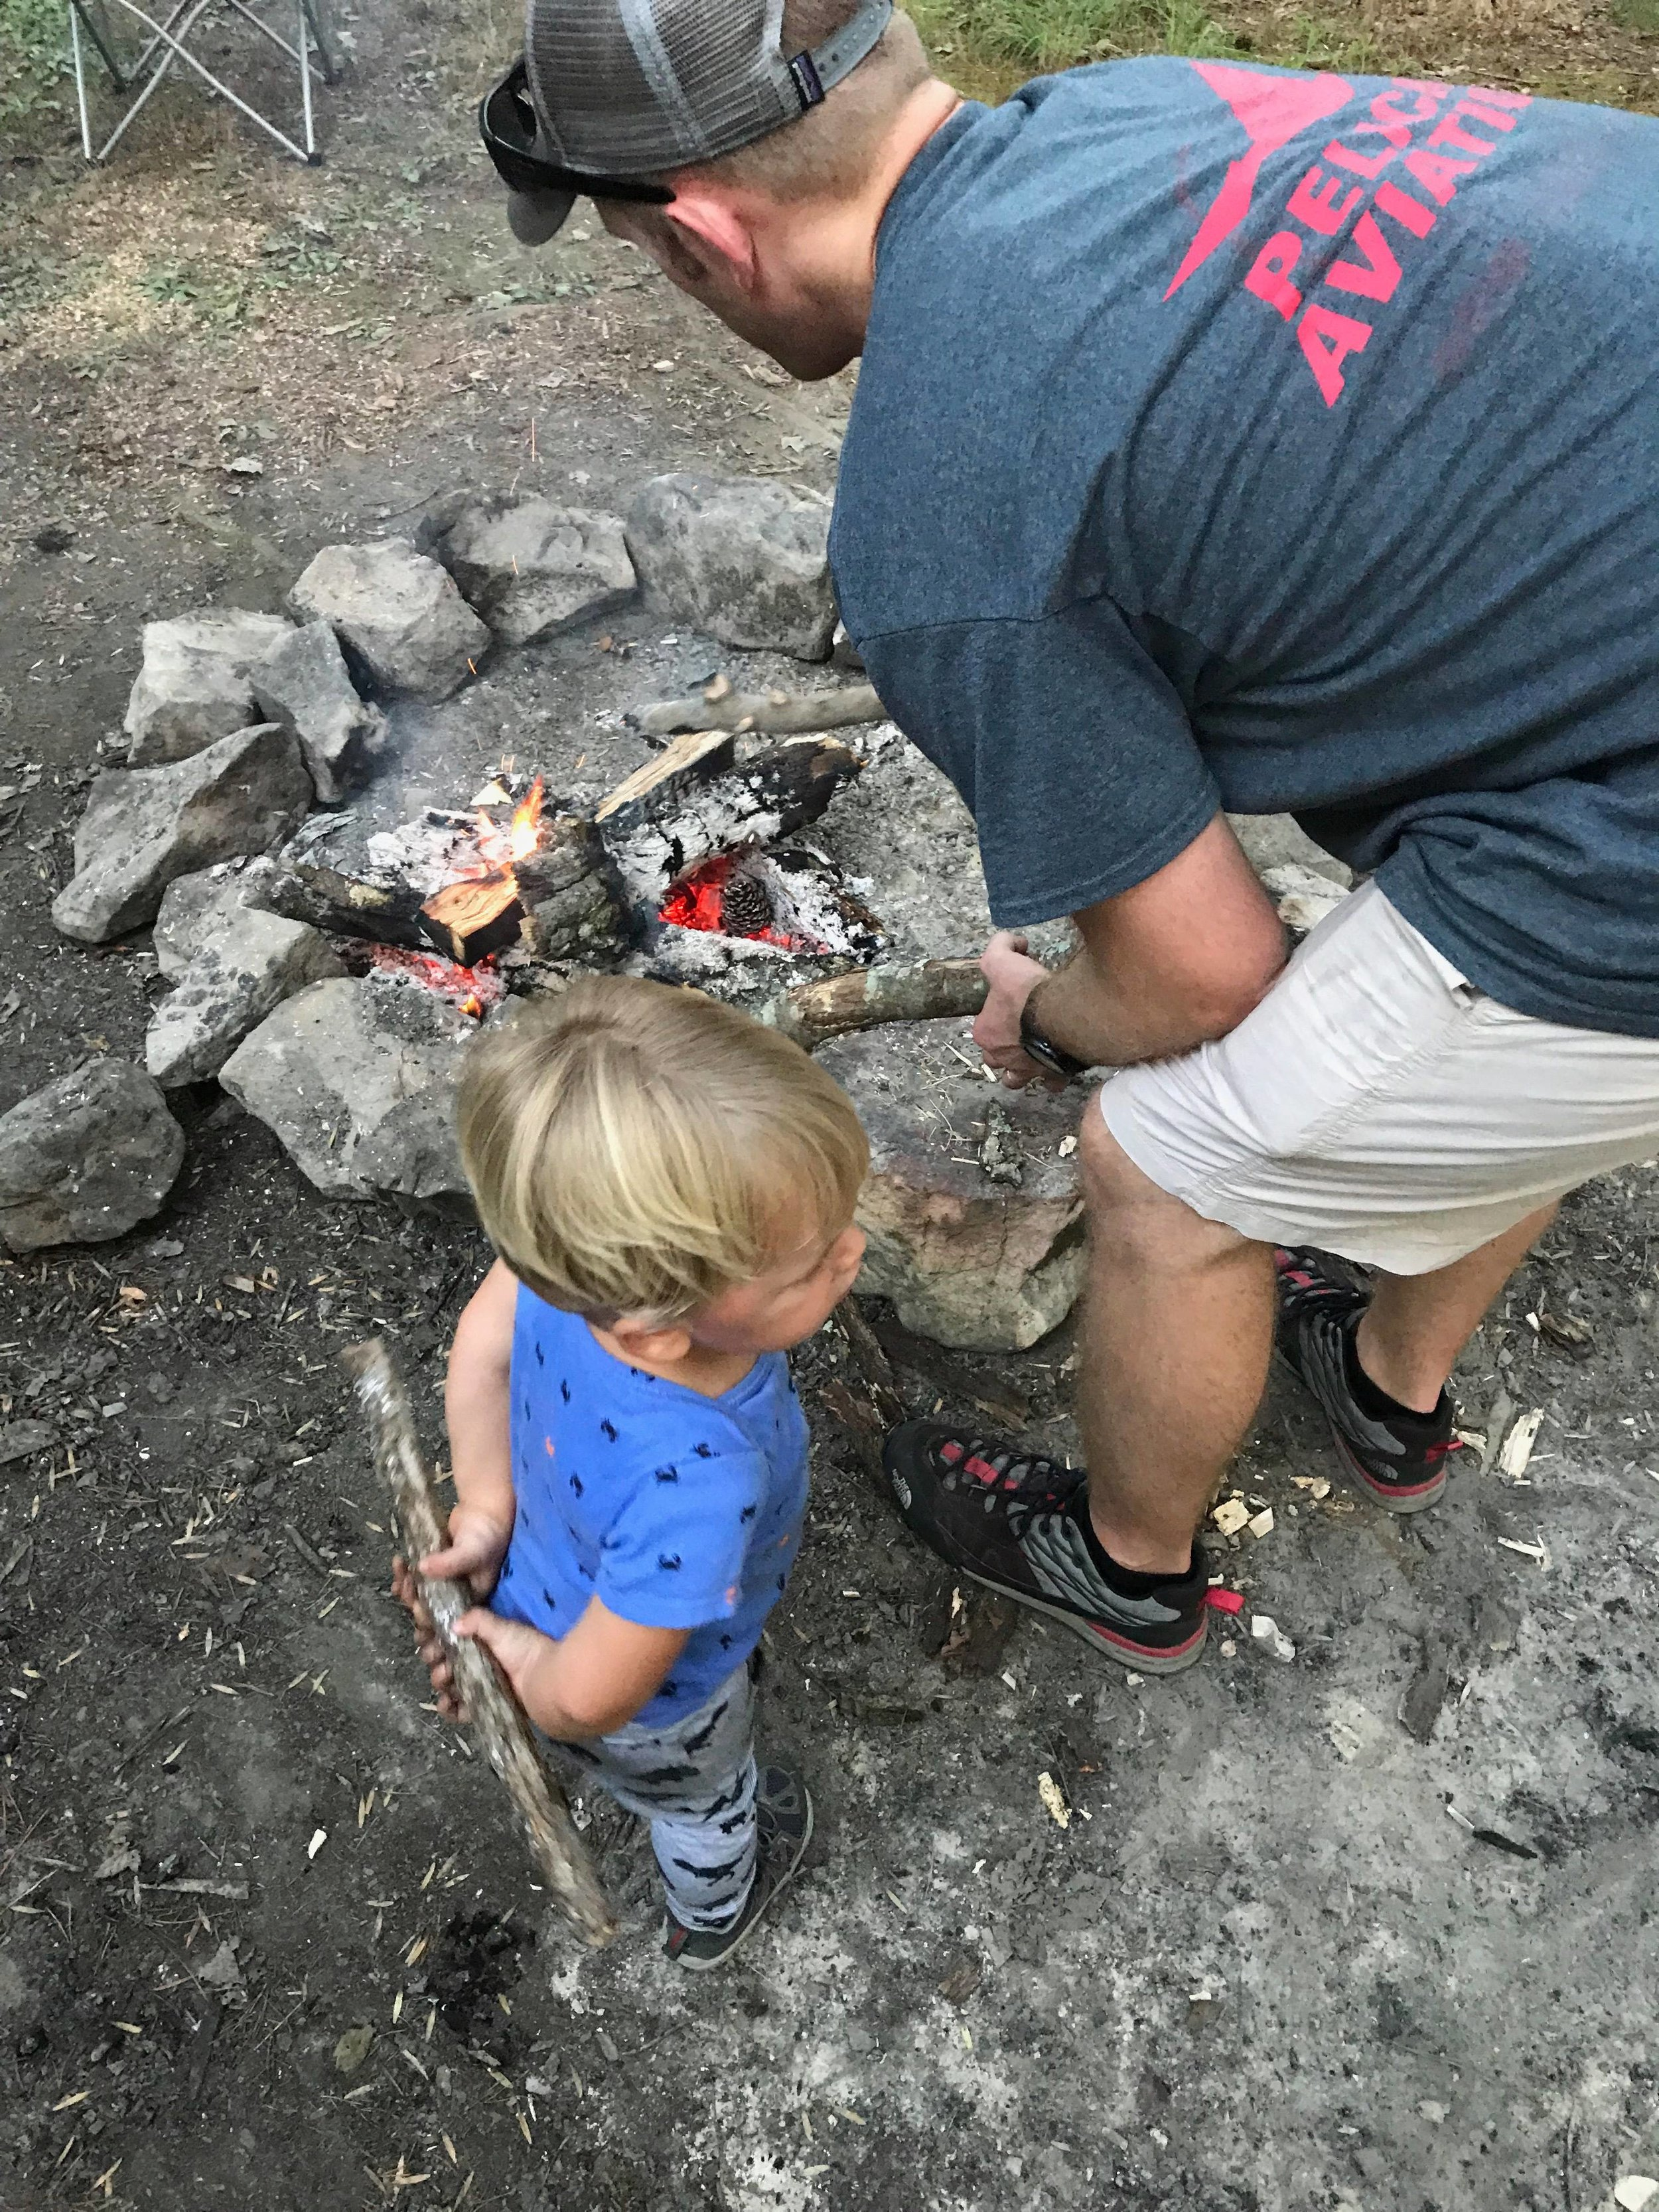 Latham helping daddy get sticks and start the fire